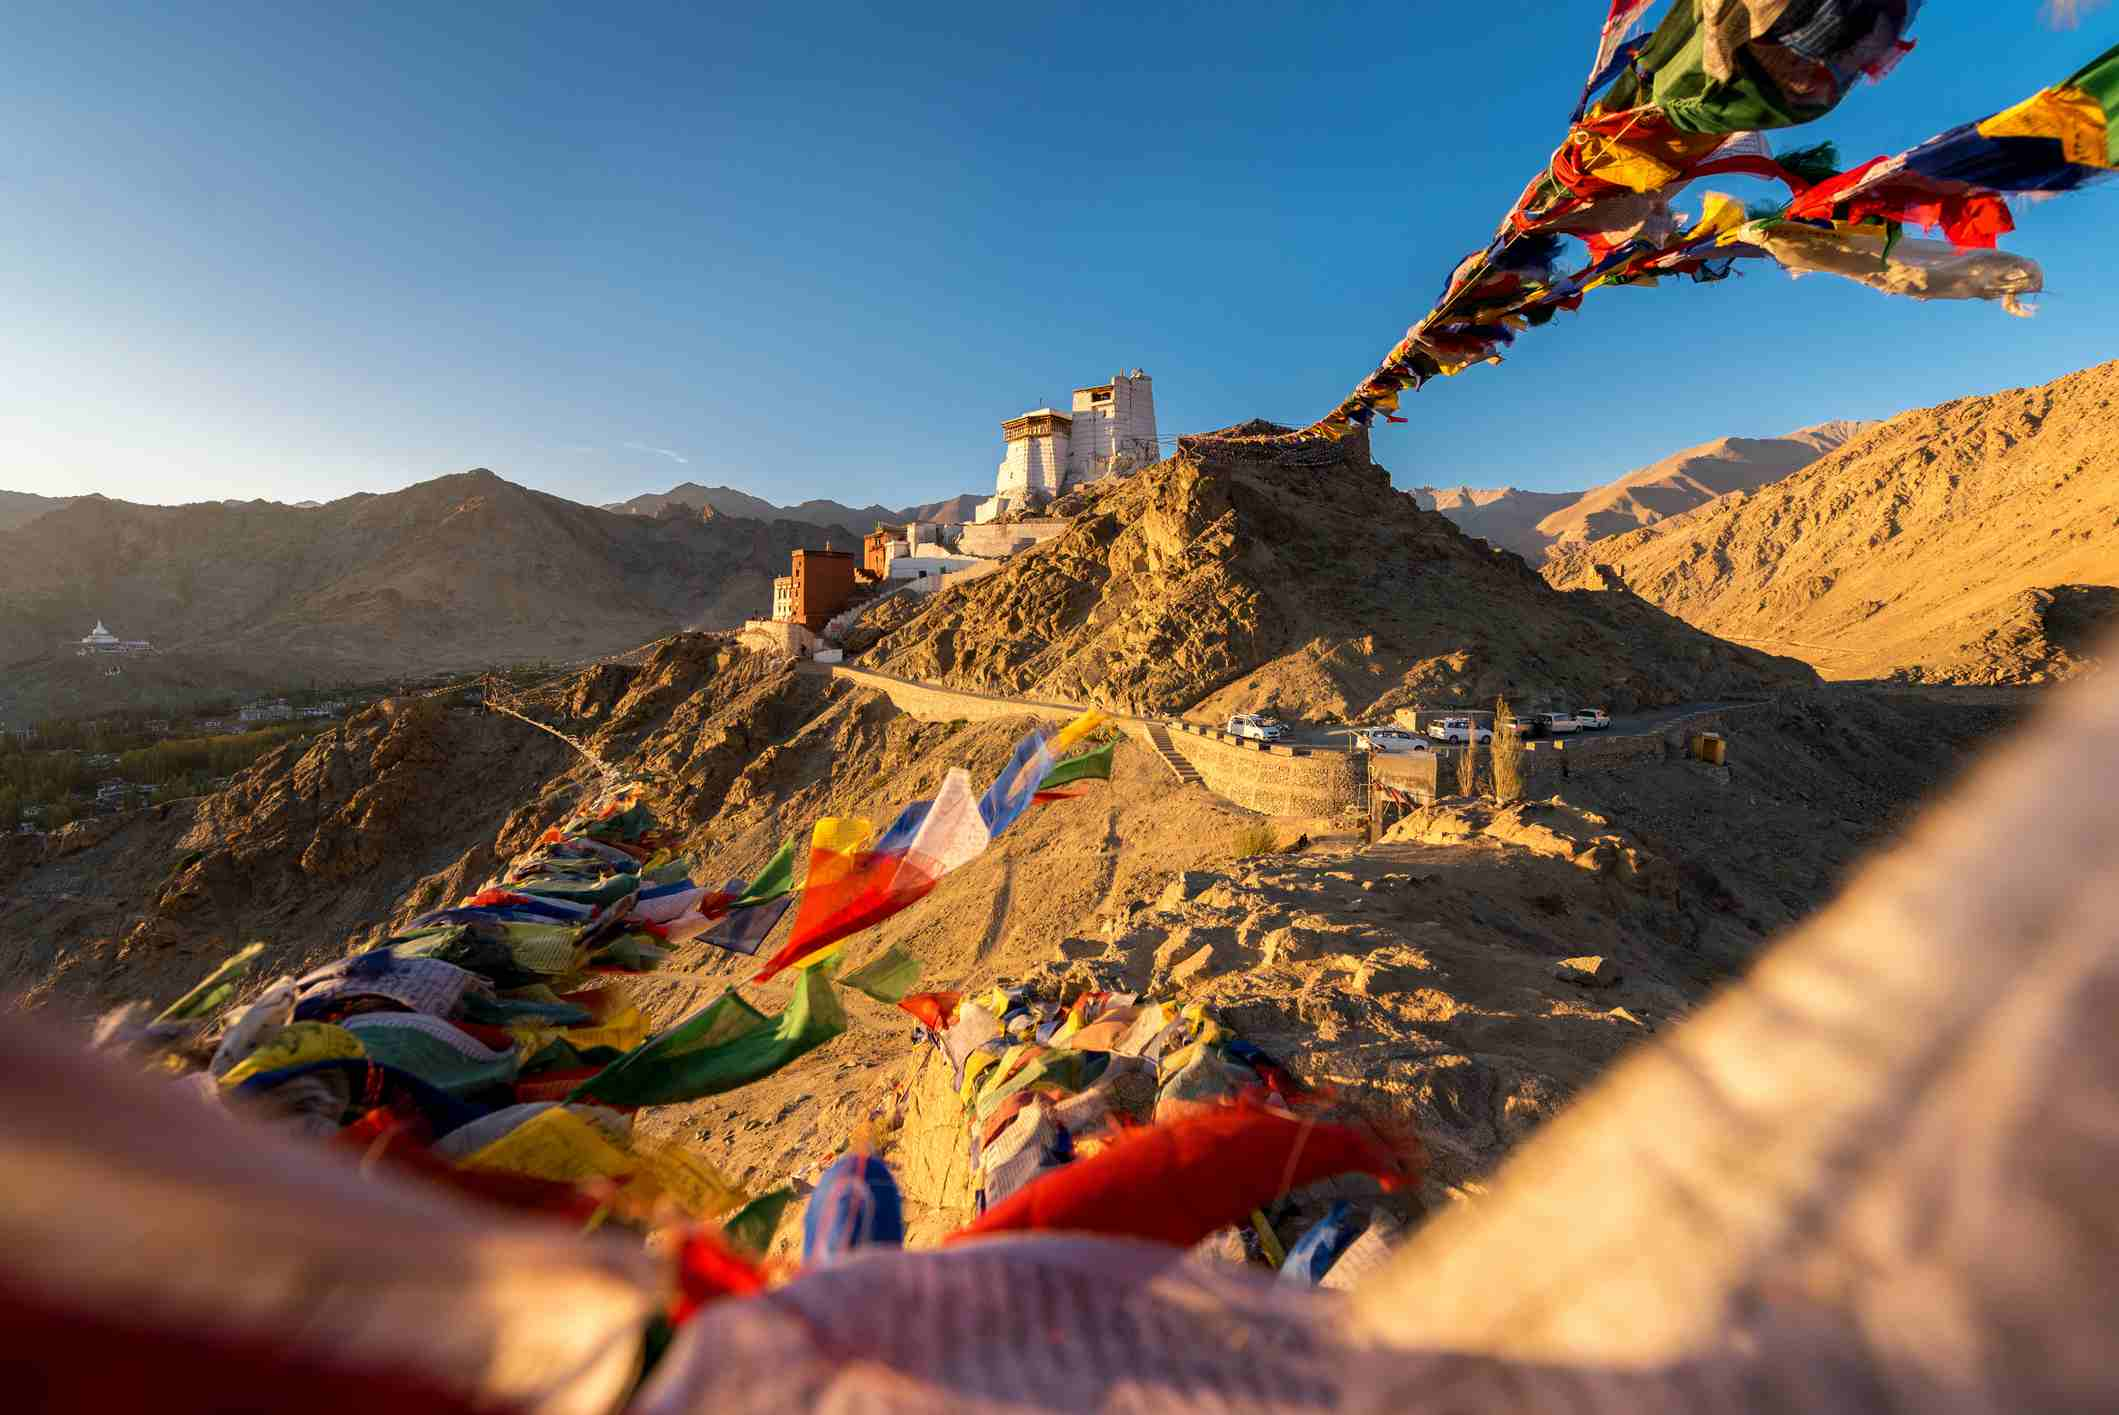 Prayer tibetan flags and the Namgyal Tsemo Monastery with mountain background in Leh, Ladakh